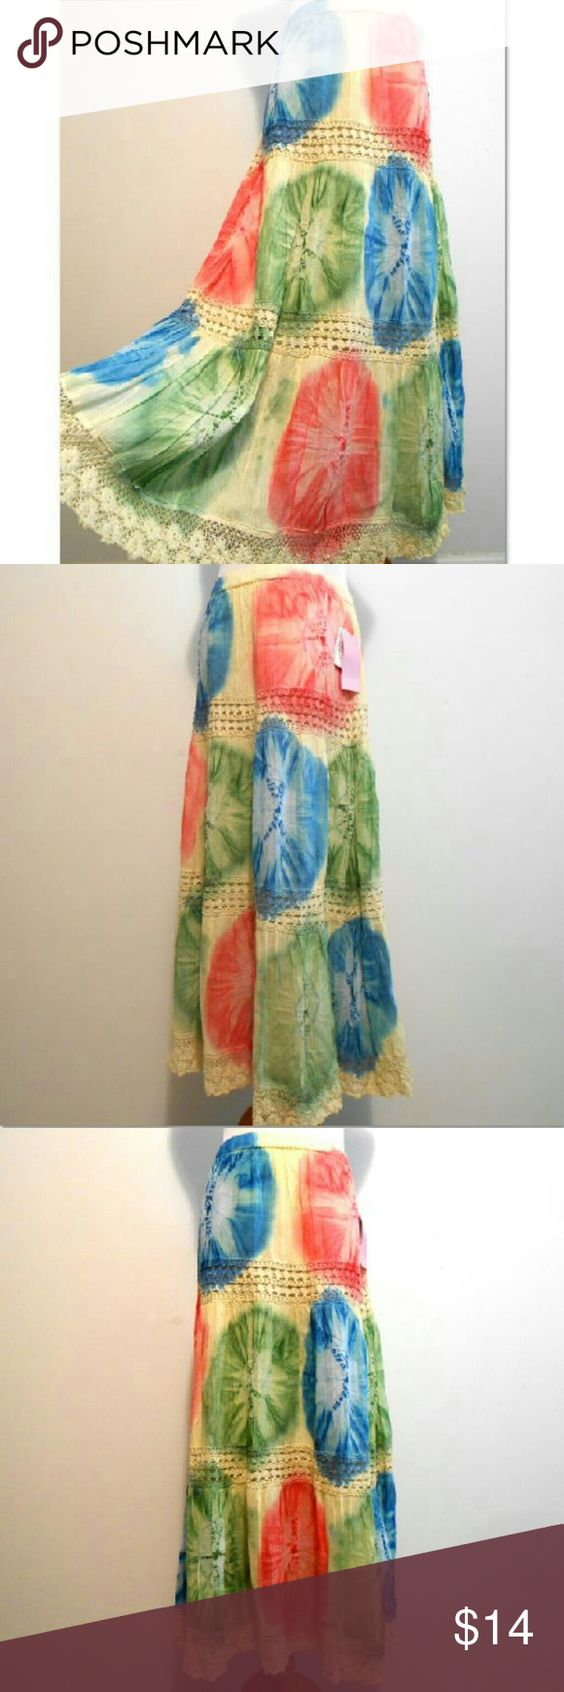 """Metro Wear Peasant Skirt Tiered Crinkle Cotton Waist: 34-42"""" Hip: 44"""" Length: 34"""" Great festival skirt. Lightweight,  gauzy crinkle cotton. 3 tiers with lace insets. Hand wash. Very good,  with tags condition. Metro Wear Skirts Maxi"""